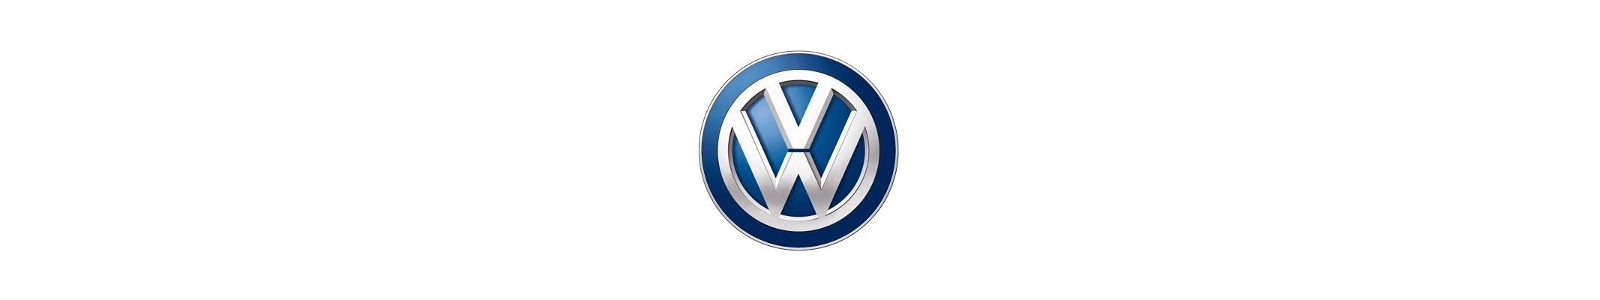 Volkswagen de Mexico chose BOARD to combine Analysis, Reporting, Performance Management and Predictive Analytics